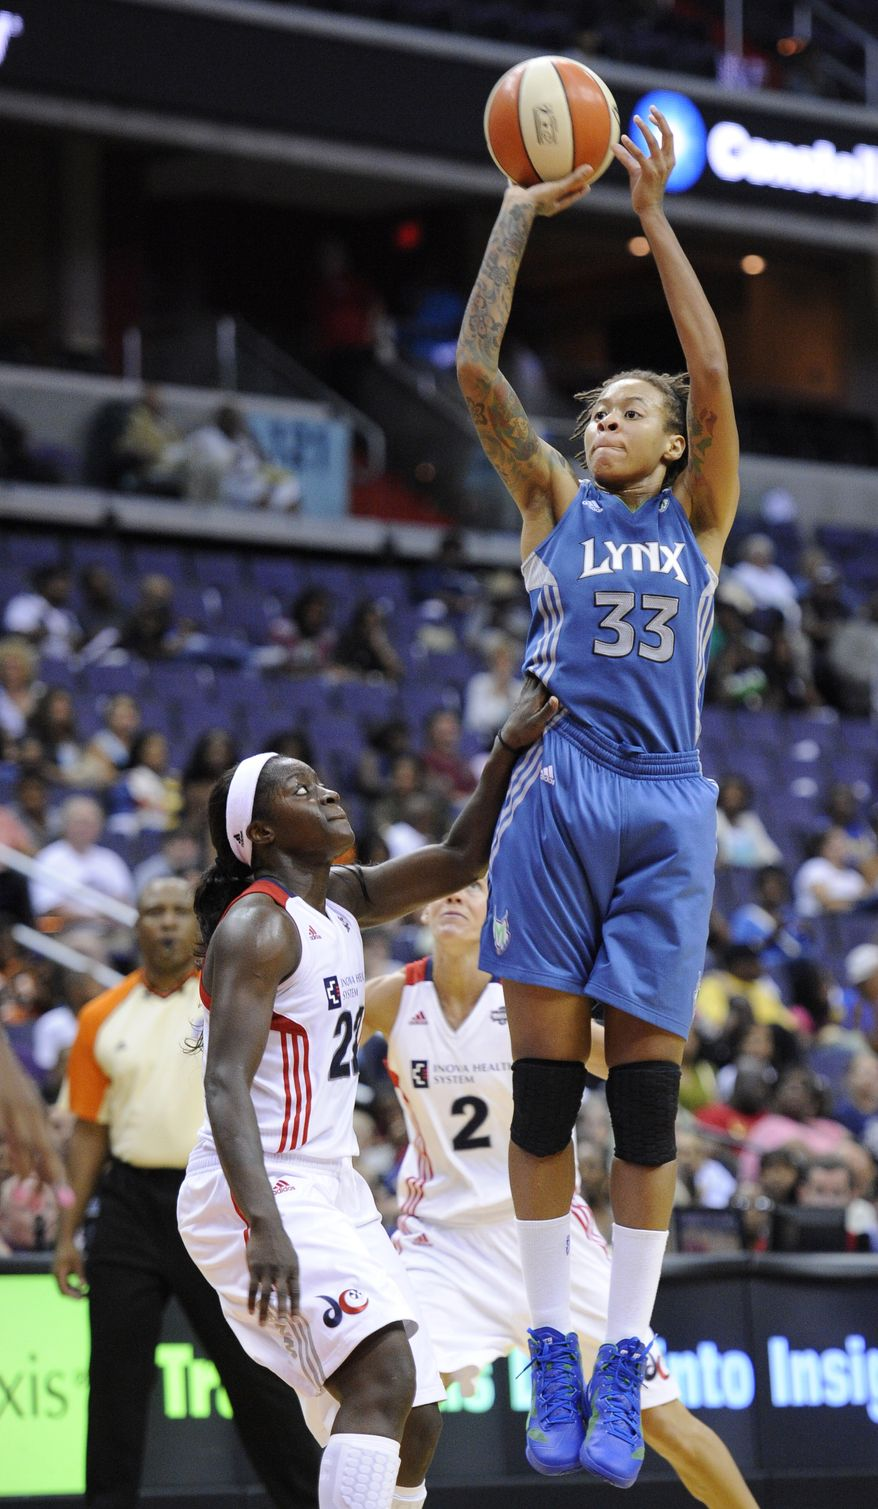 Minnesota Lynx's Seimone Augustus takes a shot over Washington Mystics' Matee Ajavon during the second half of Thursday night's game. The Lynx won 81-62. (AP Photo/Nick Wass)